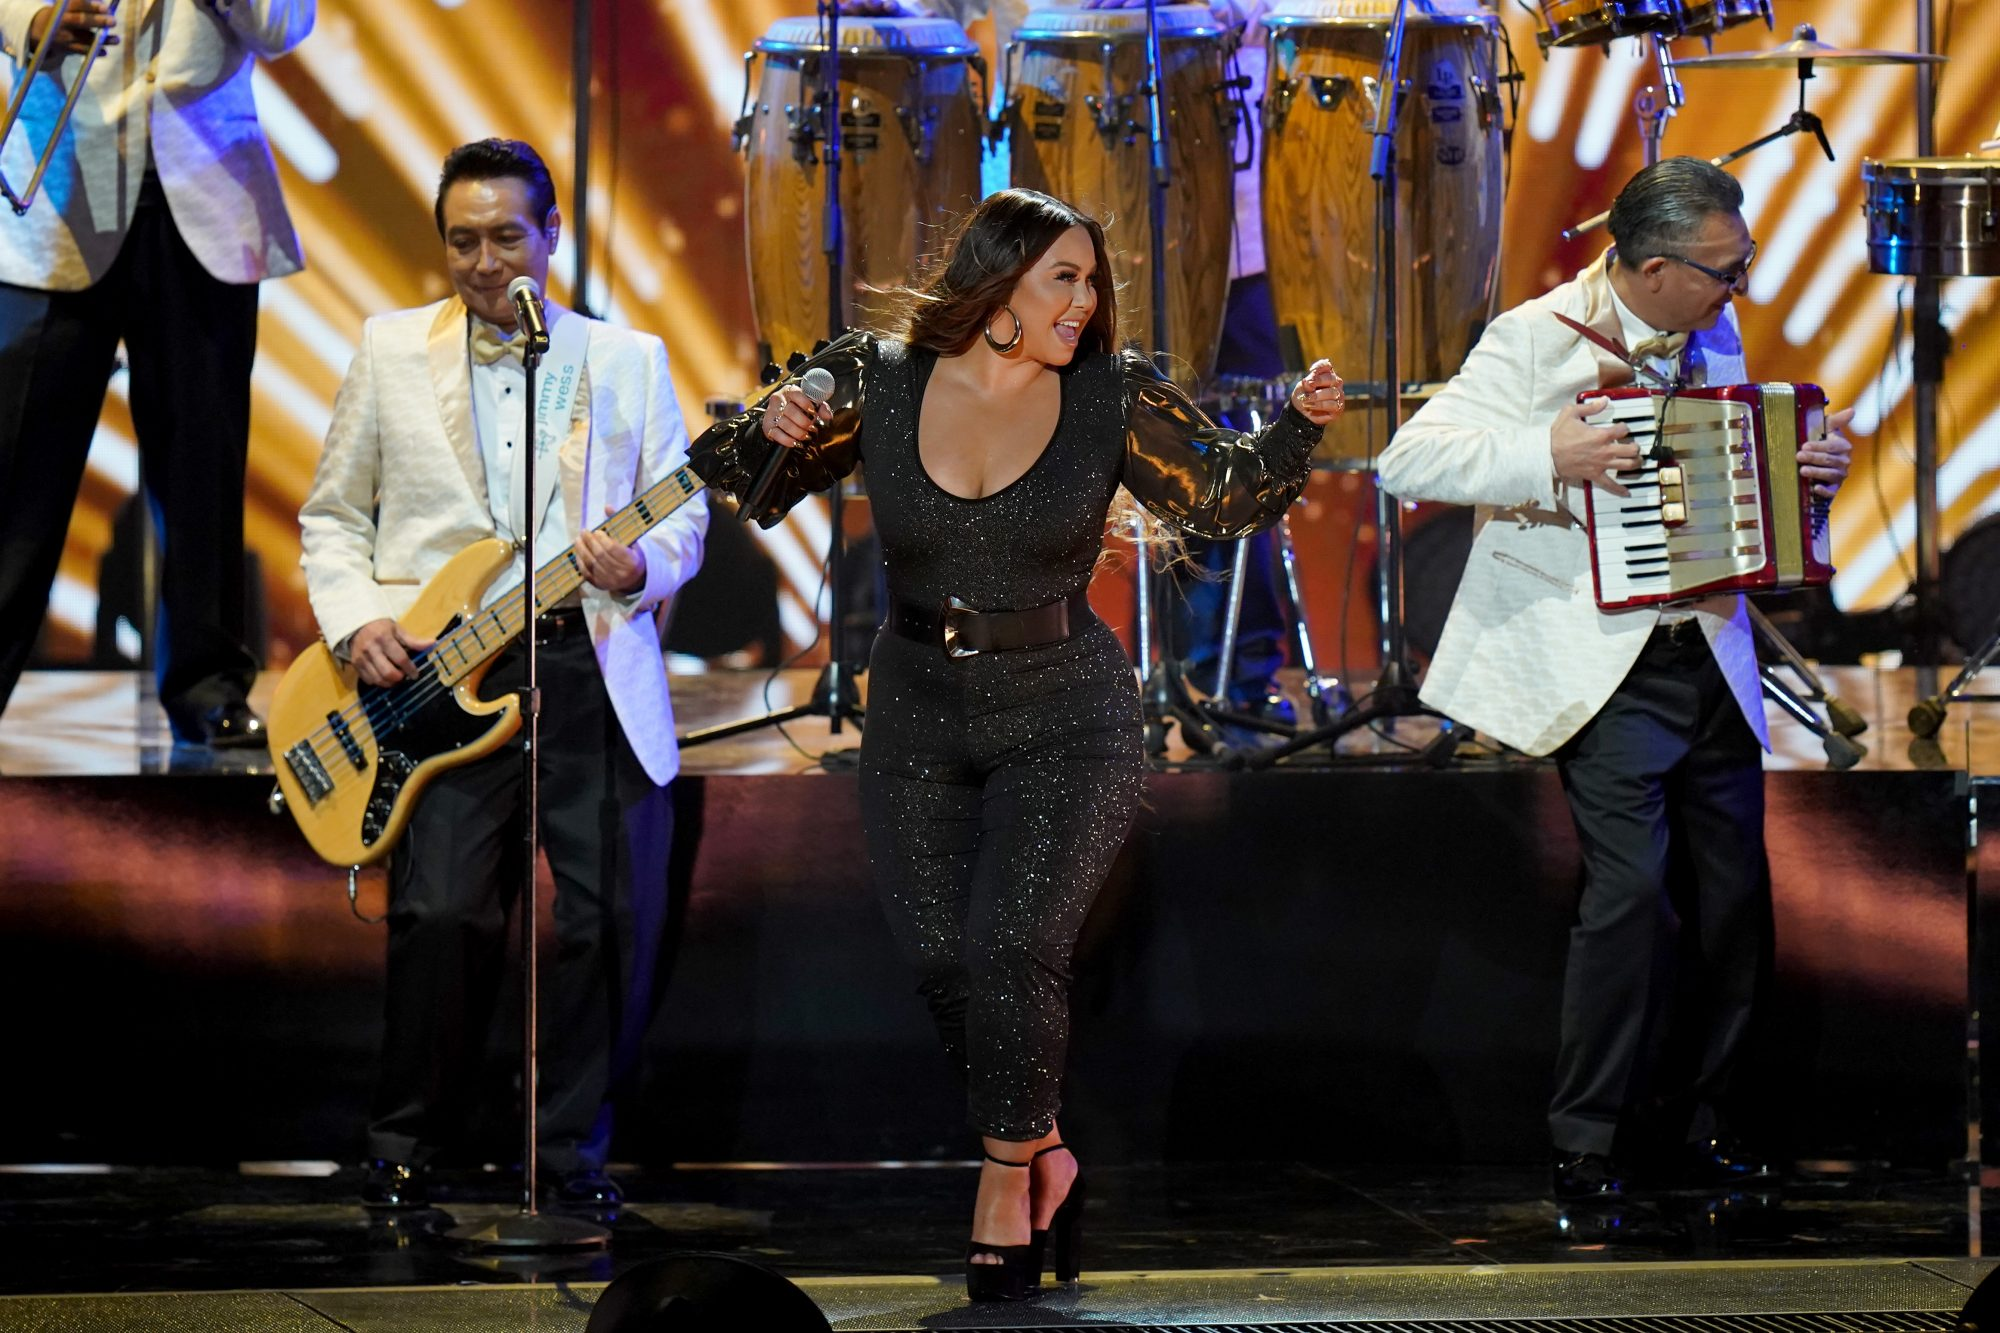 """Chiquis joined legendary cumbia band Los Ángeles Azules to perform """"El Listón de Tu Pelo."""" The band received the Musical Legacy award. """"Thank you Premio Lo Nuestro for this recognition. It's been 40 years and we want to thank our family and all of our Hispanic fans. Let's give them a round of applause,"""" they said in their speech."""